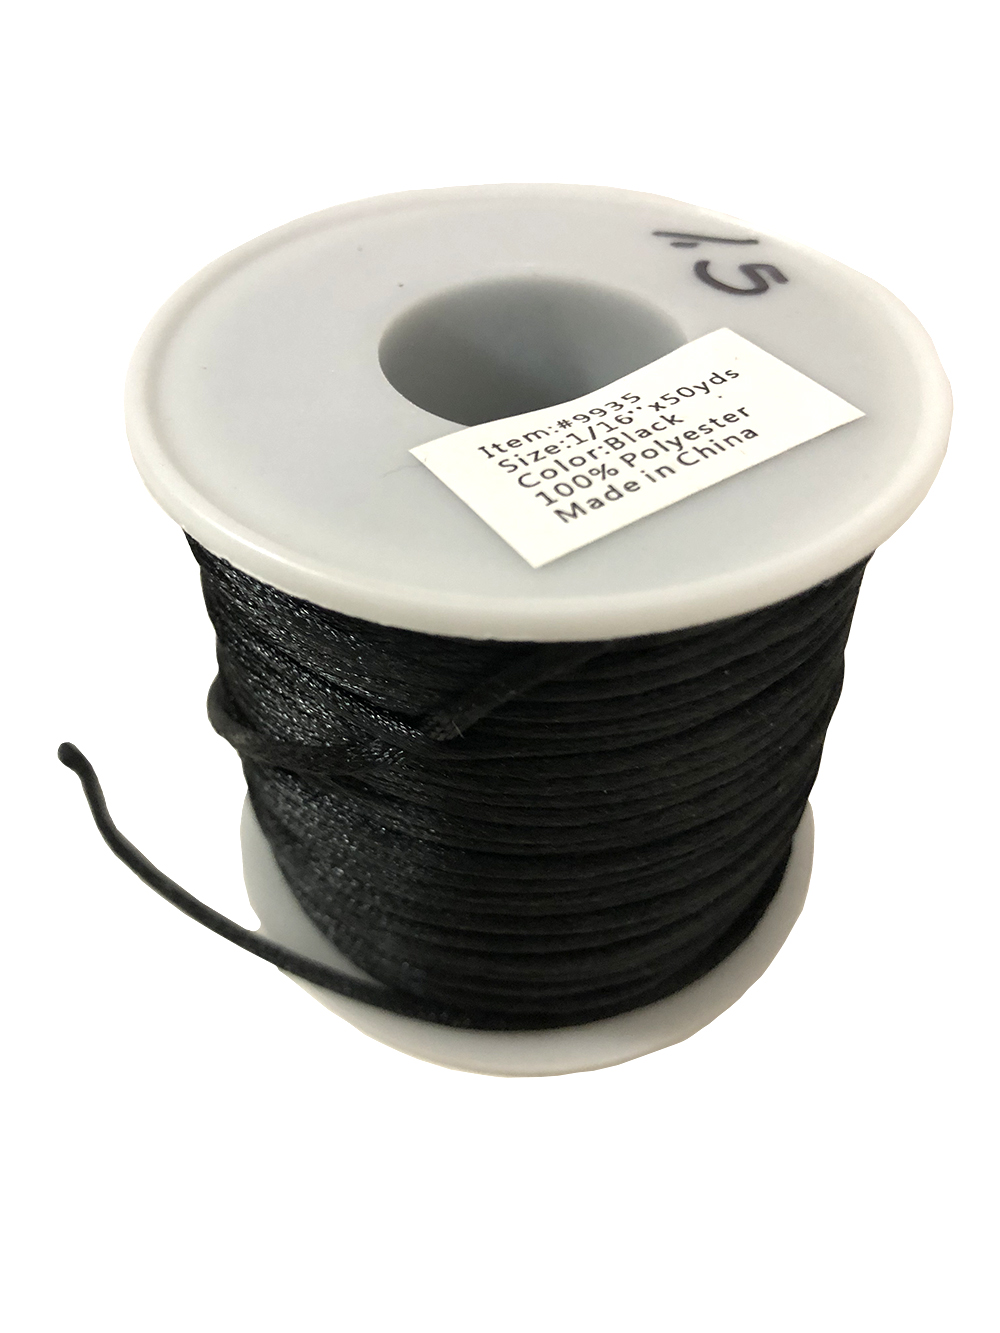 #1 Mousetail, 1.5mm Polyester cord, 50 yards, Black